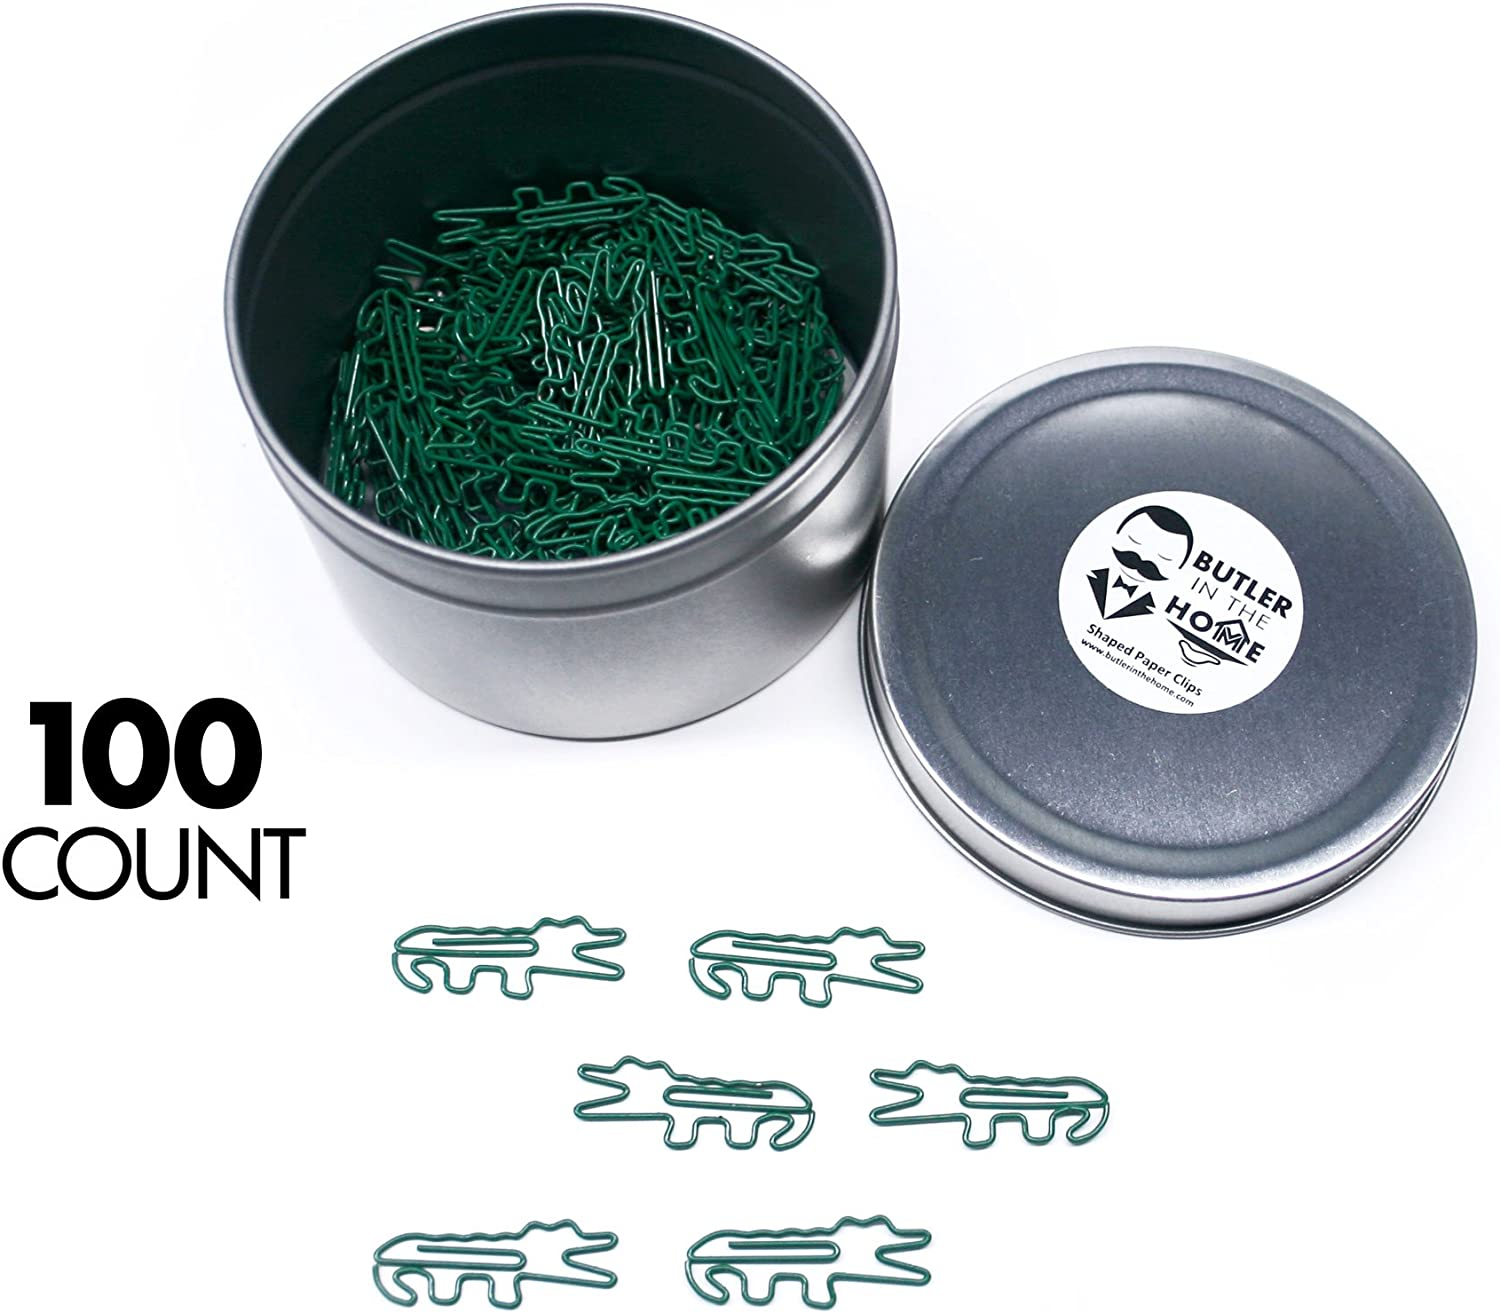 Butler in the Home Alligator Gator or Crocodile Shaped Paper Clips Great for Paper Clip Collectors or Office Gift - Comes in Round Tin with Lid and Gift Box (100 Count Green)